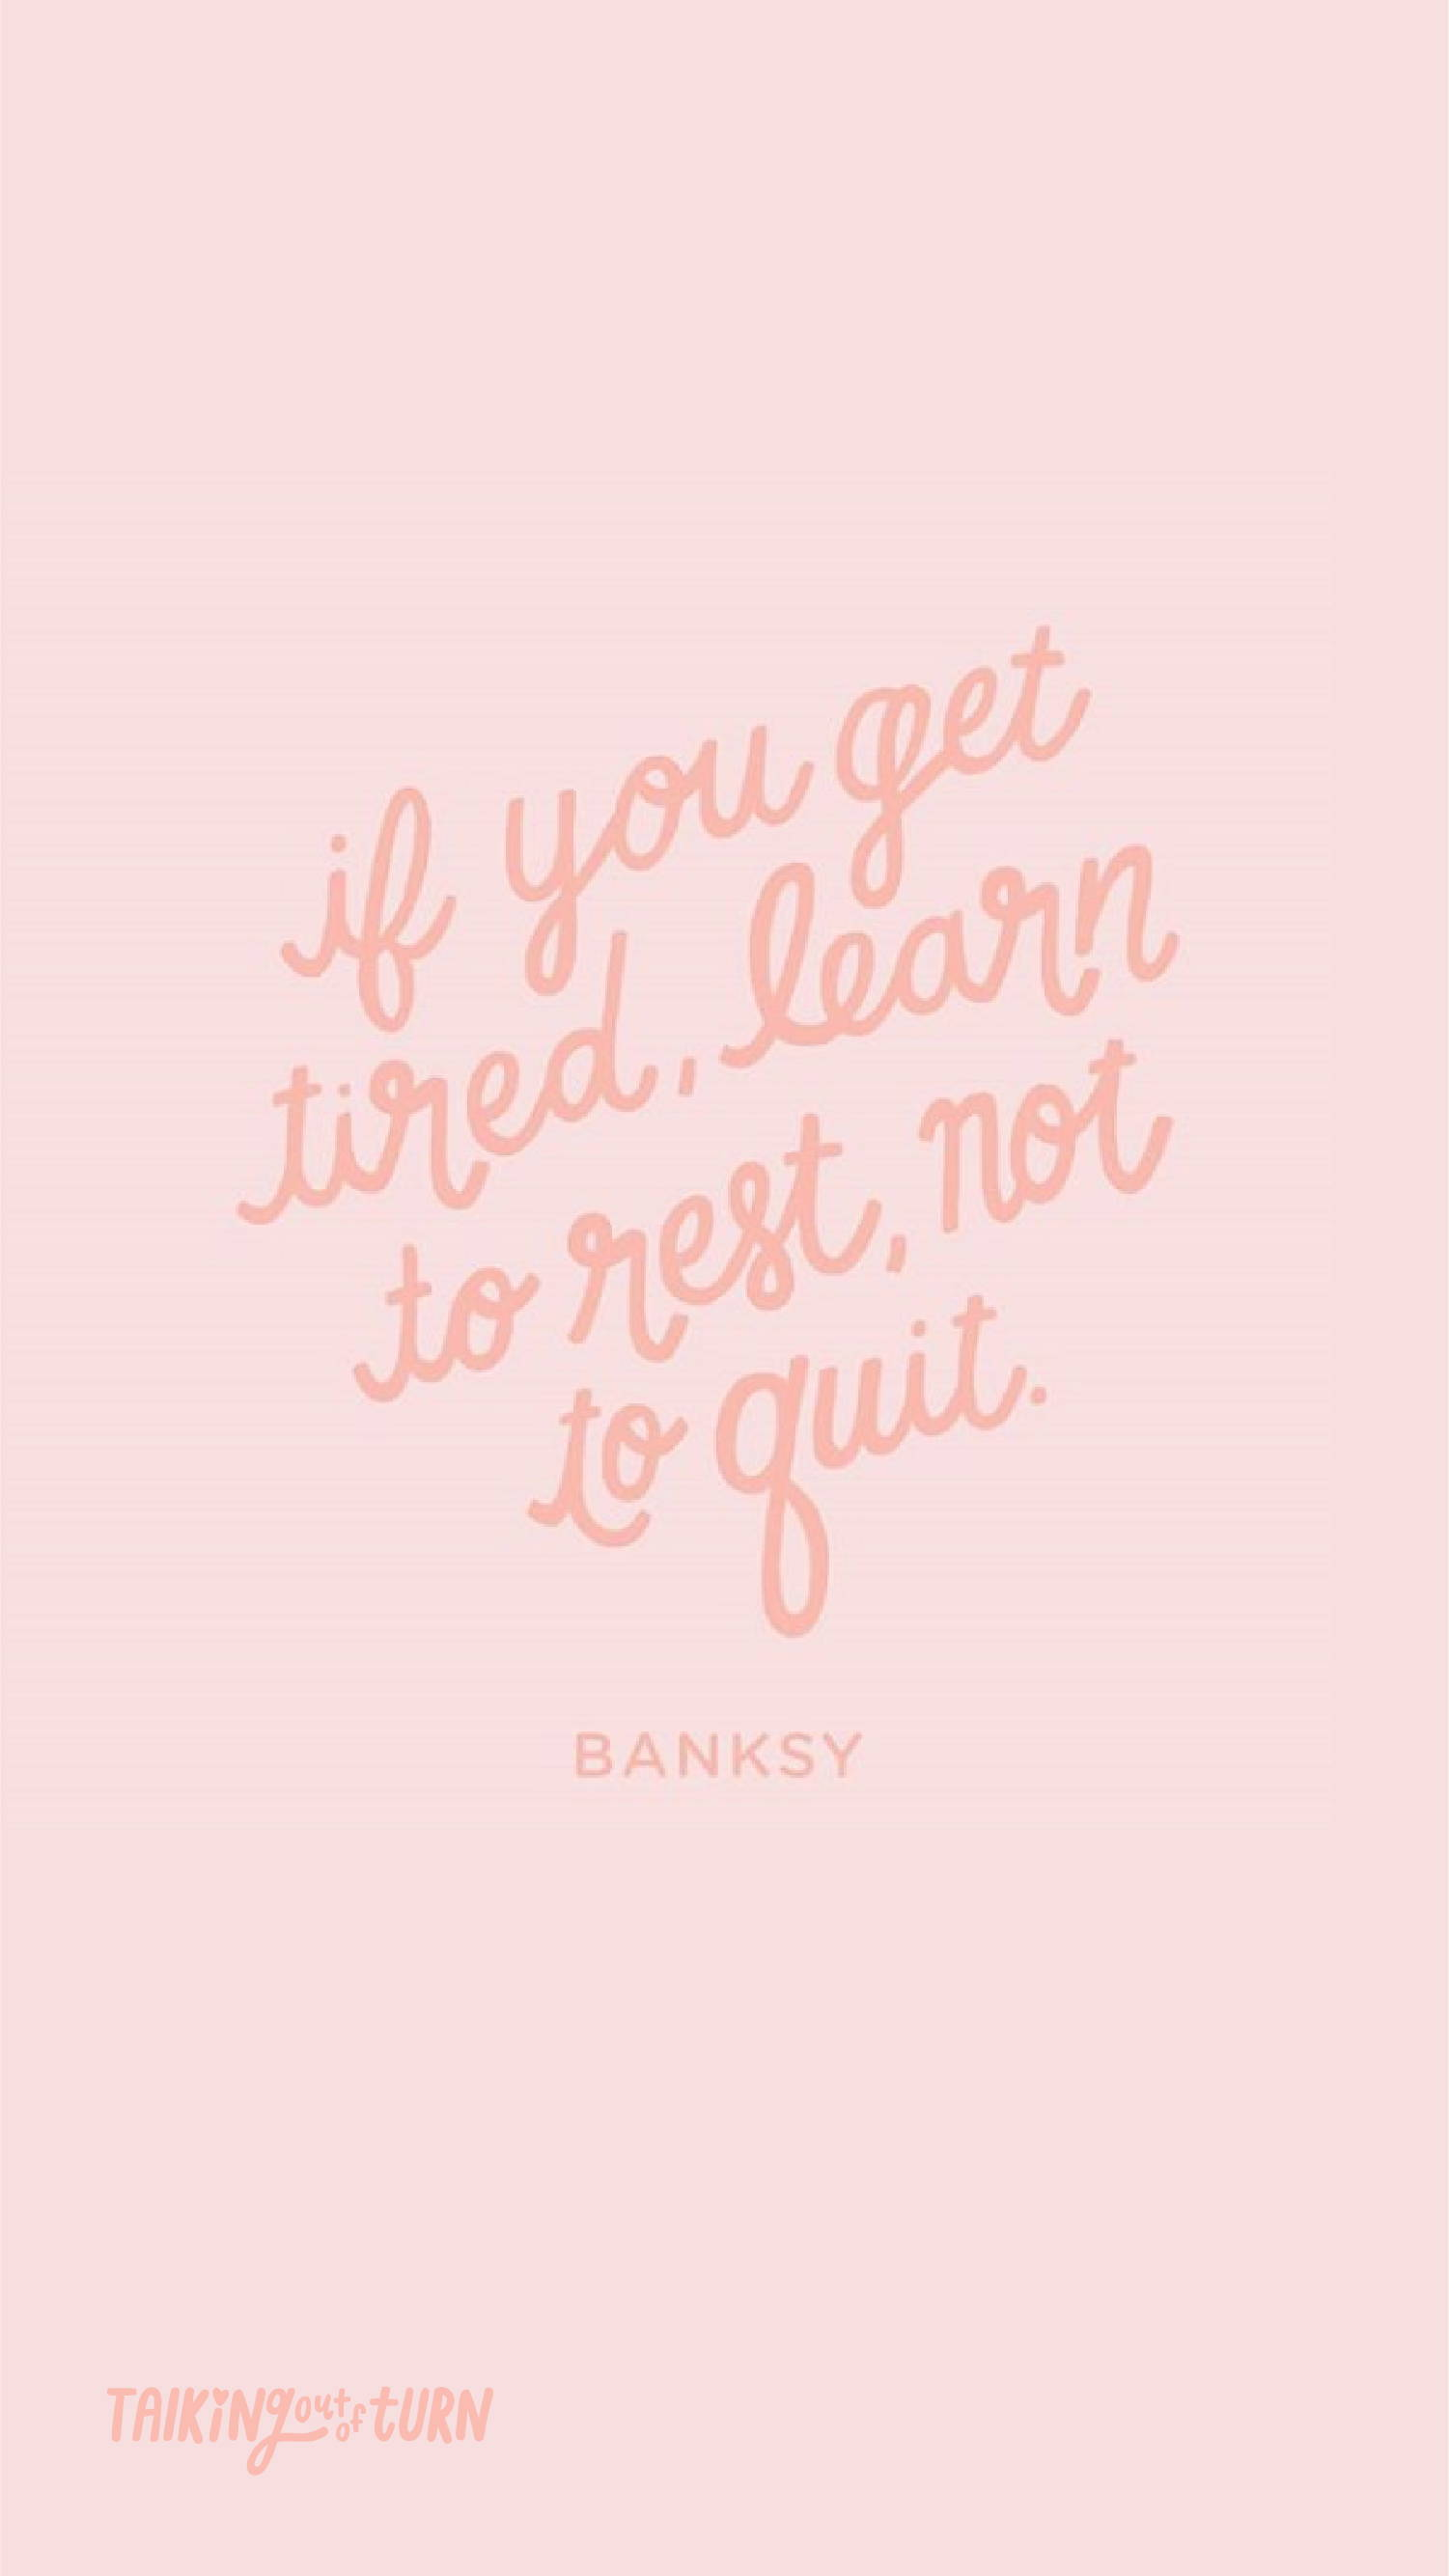 Free phone wallpaper of hand lettering with the Banksy quote 'If you get tired, learn to rest, not to quit.'